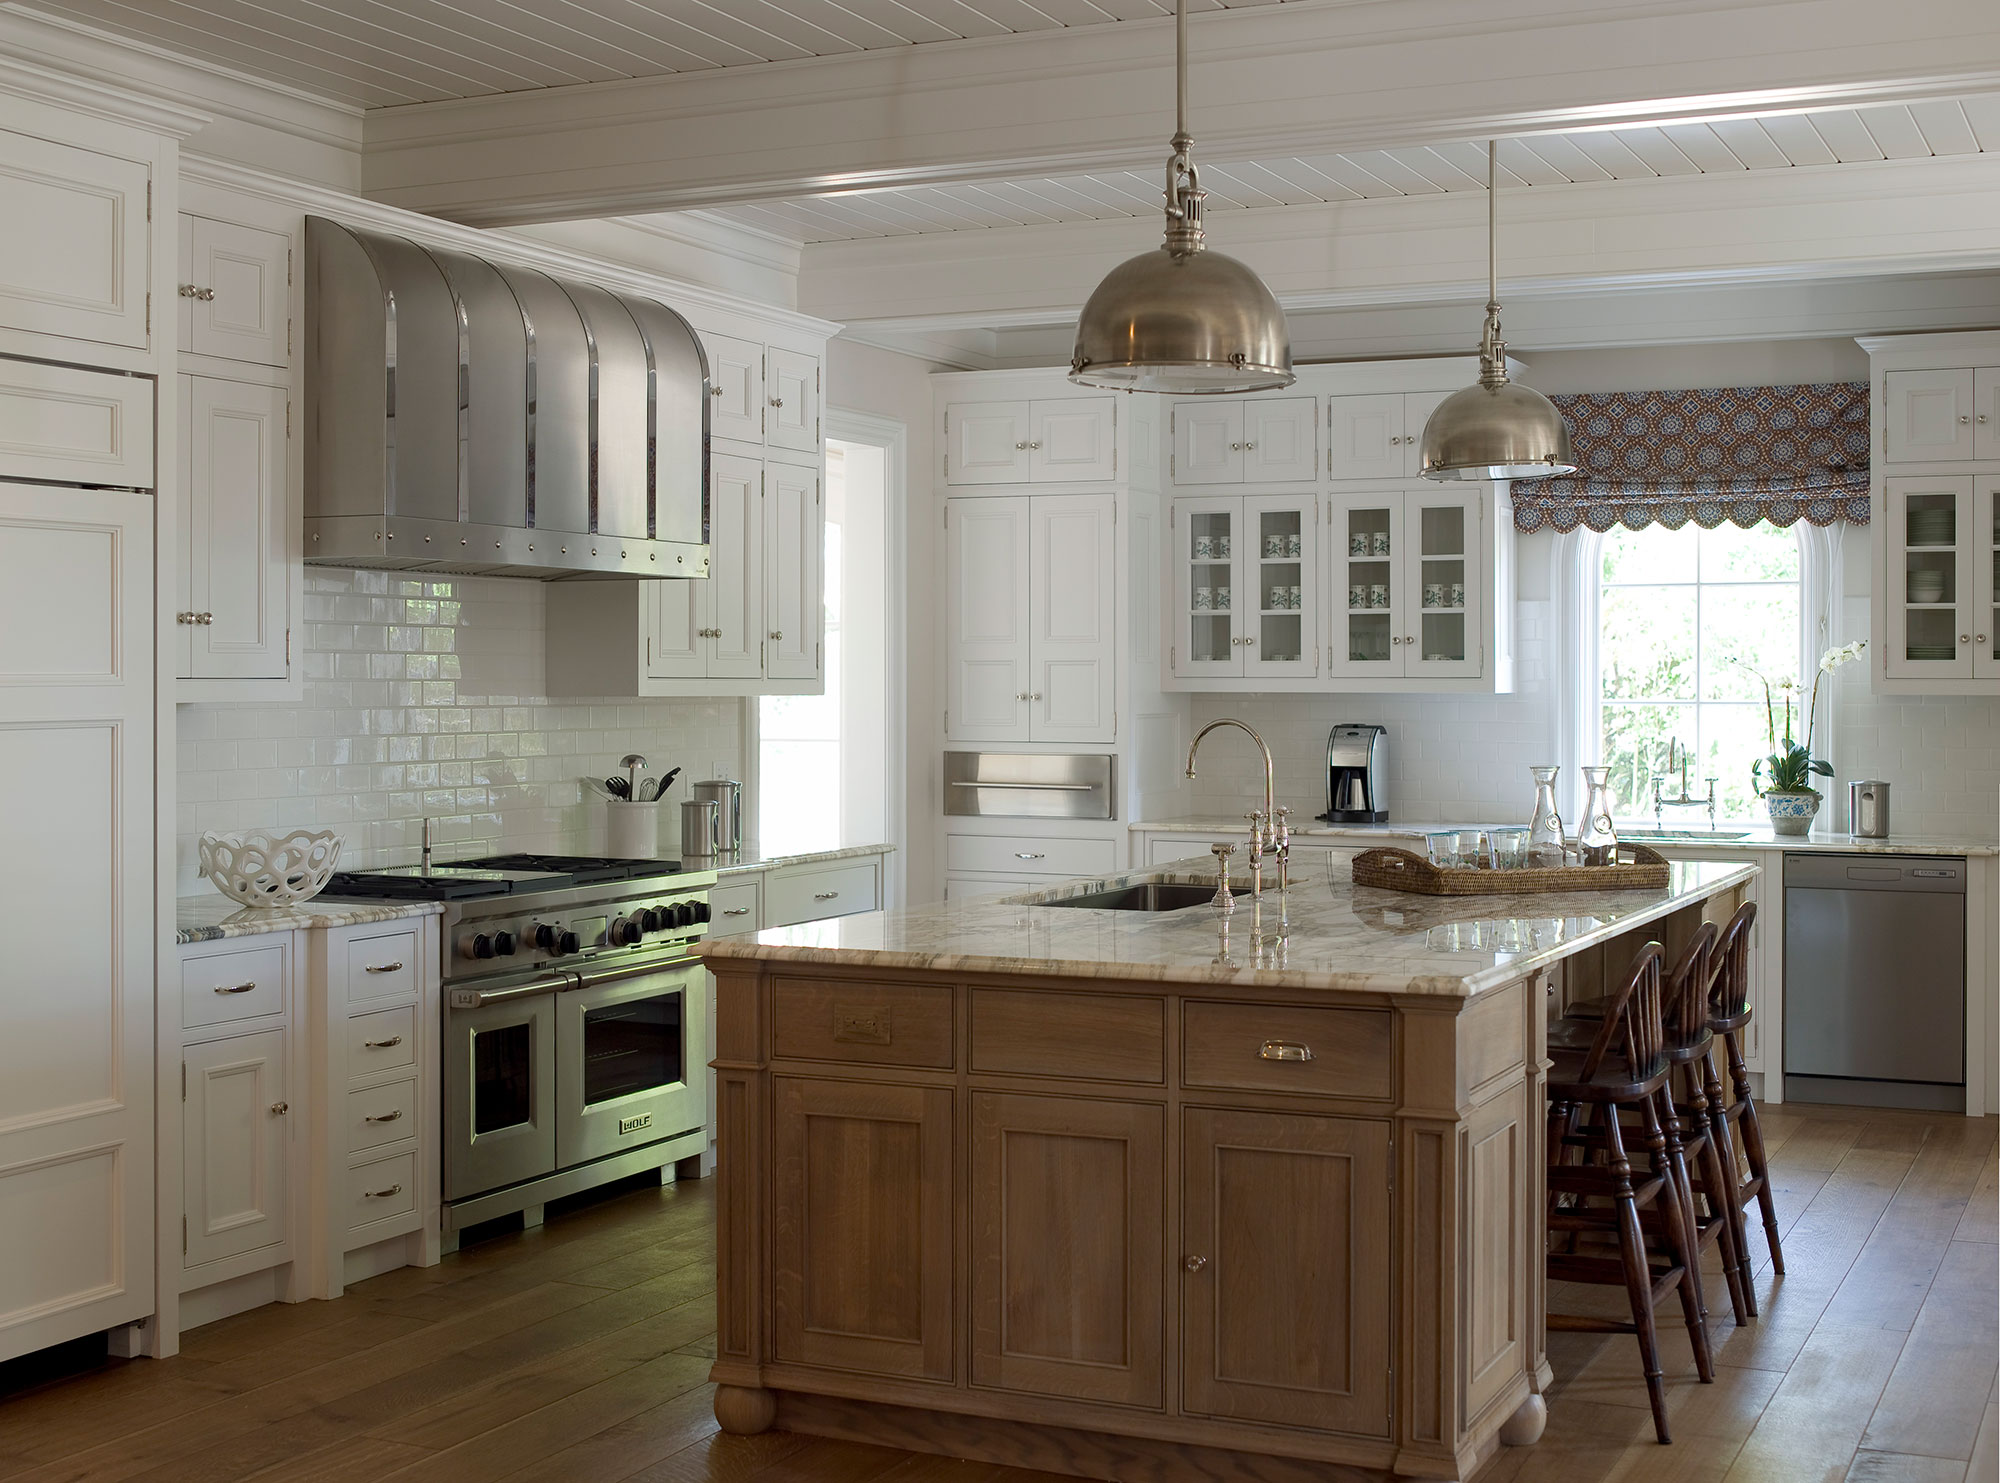 Sea Island, Georgia - kitchen with large island and customer hood. By James Michael Howard